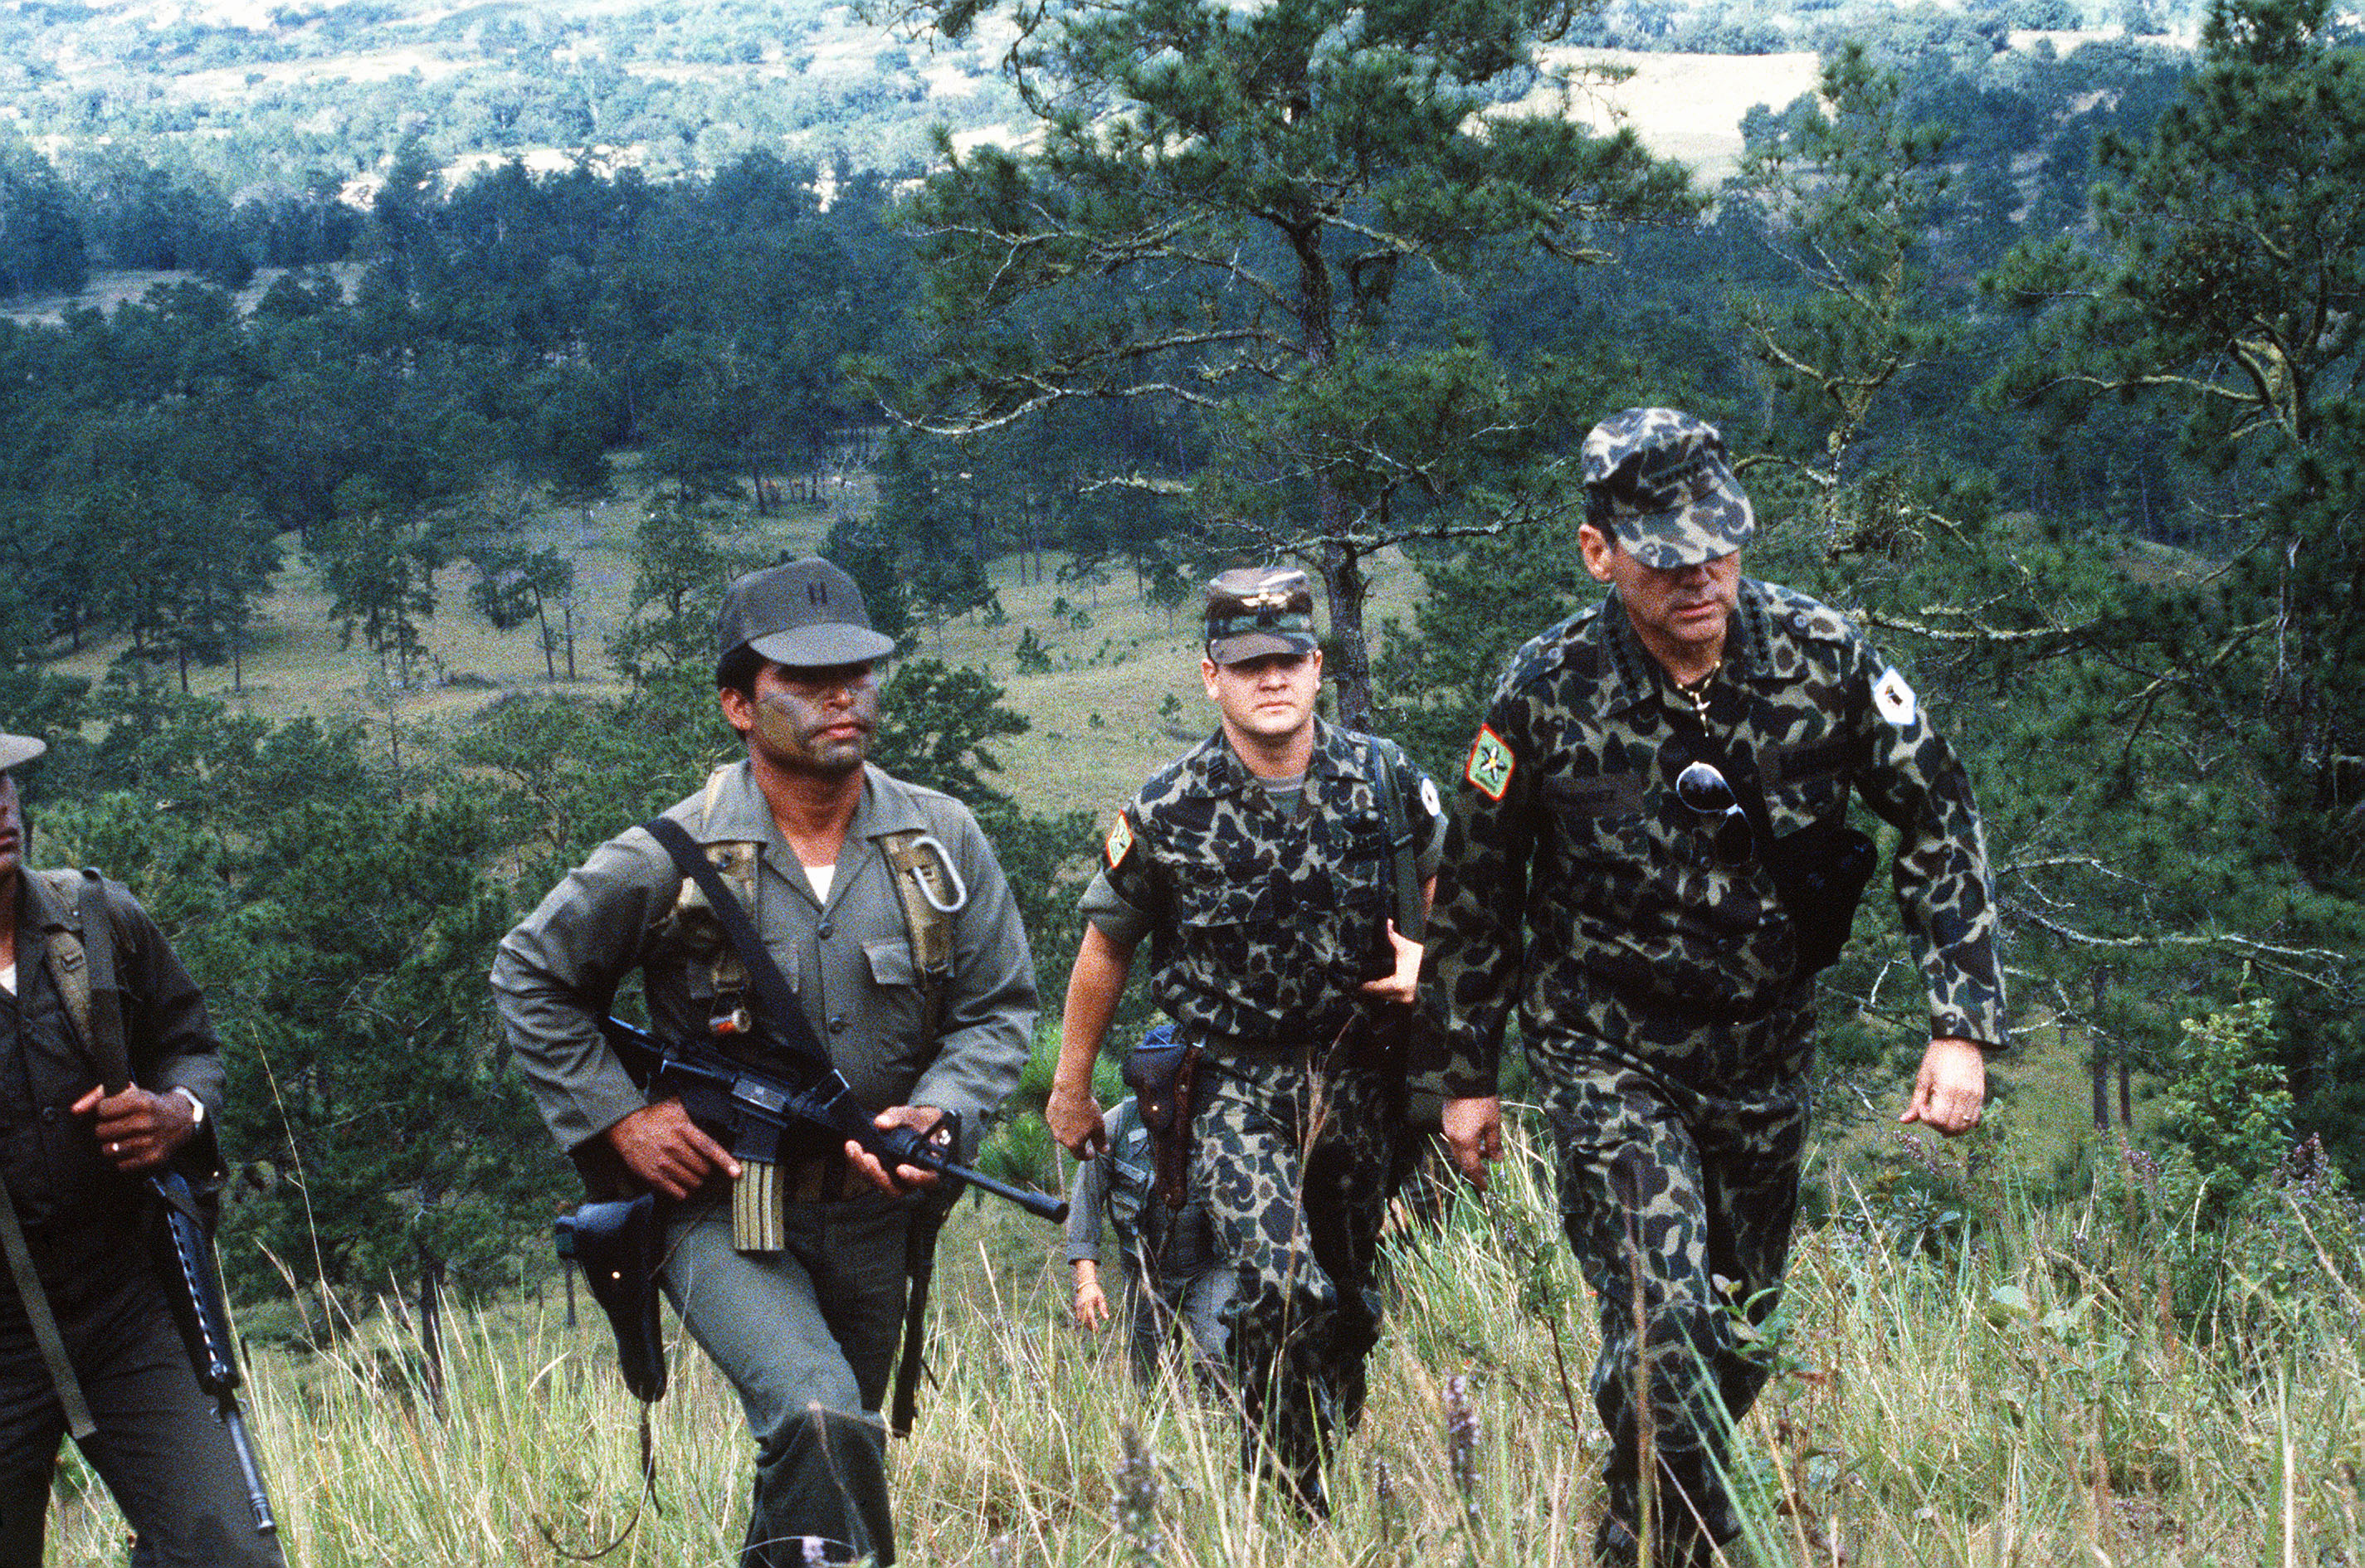 General Gustavo Adolfo Alvarez Martinez, chief of the Honduran armed forces, arrives at San Estaban Valley with his aides and bodyguards.  Martinez is in the area to observe a parachute drop by Honduran troops during Exercise AHUAS TARA (BIG PINE) II.